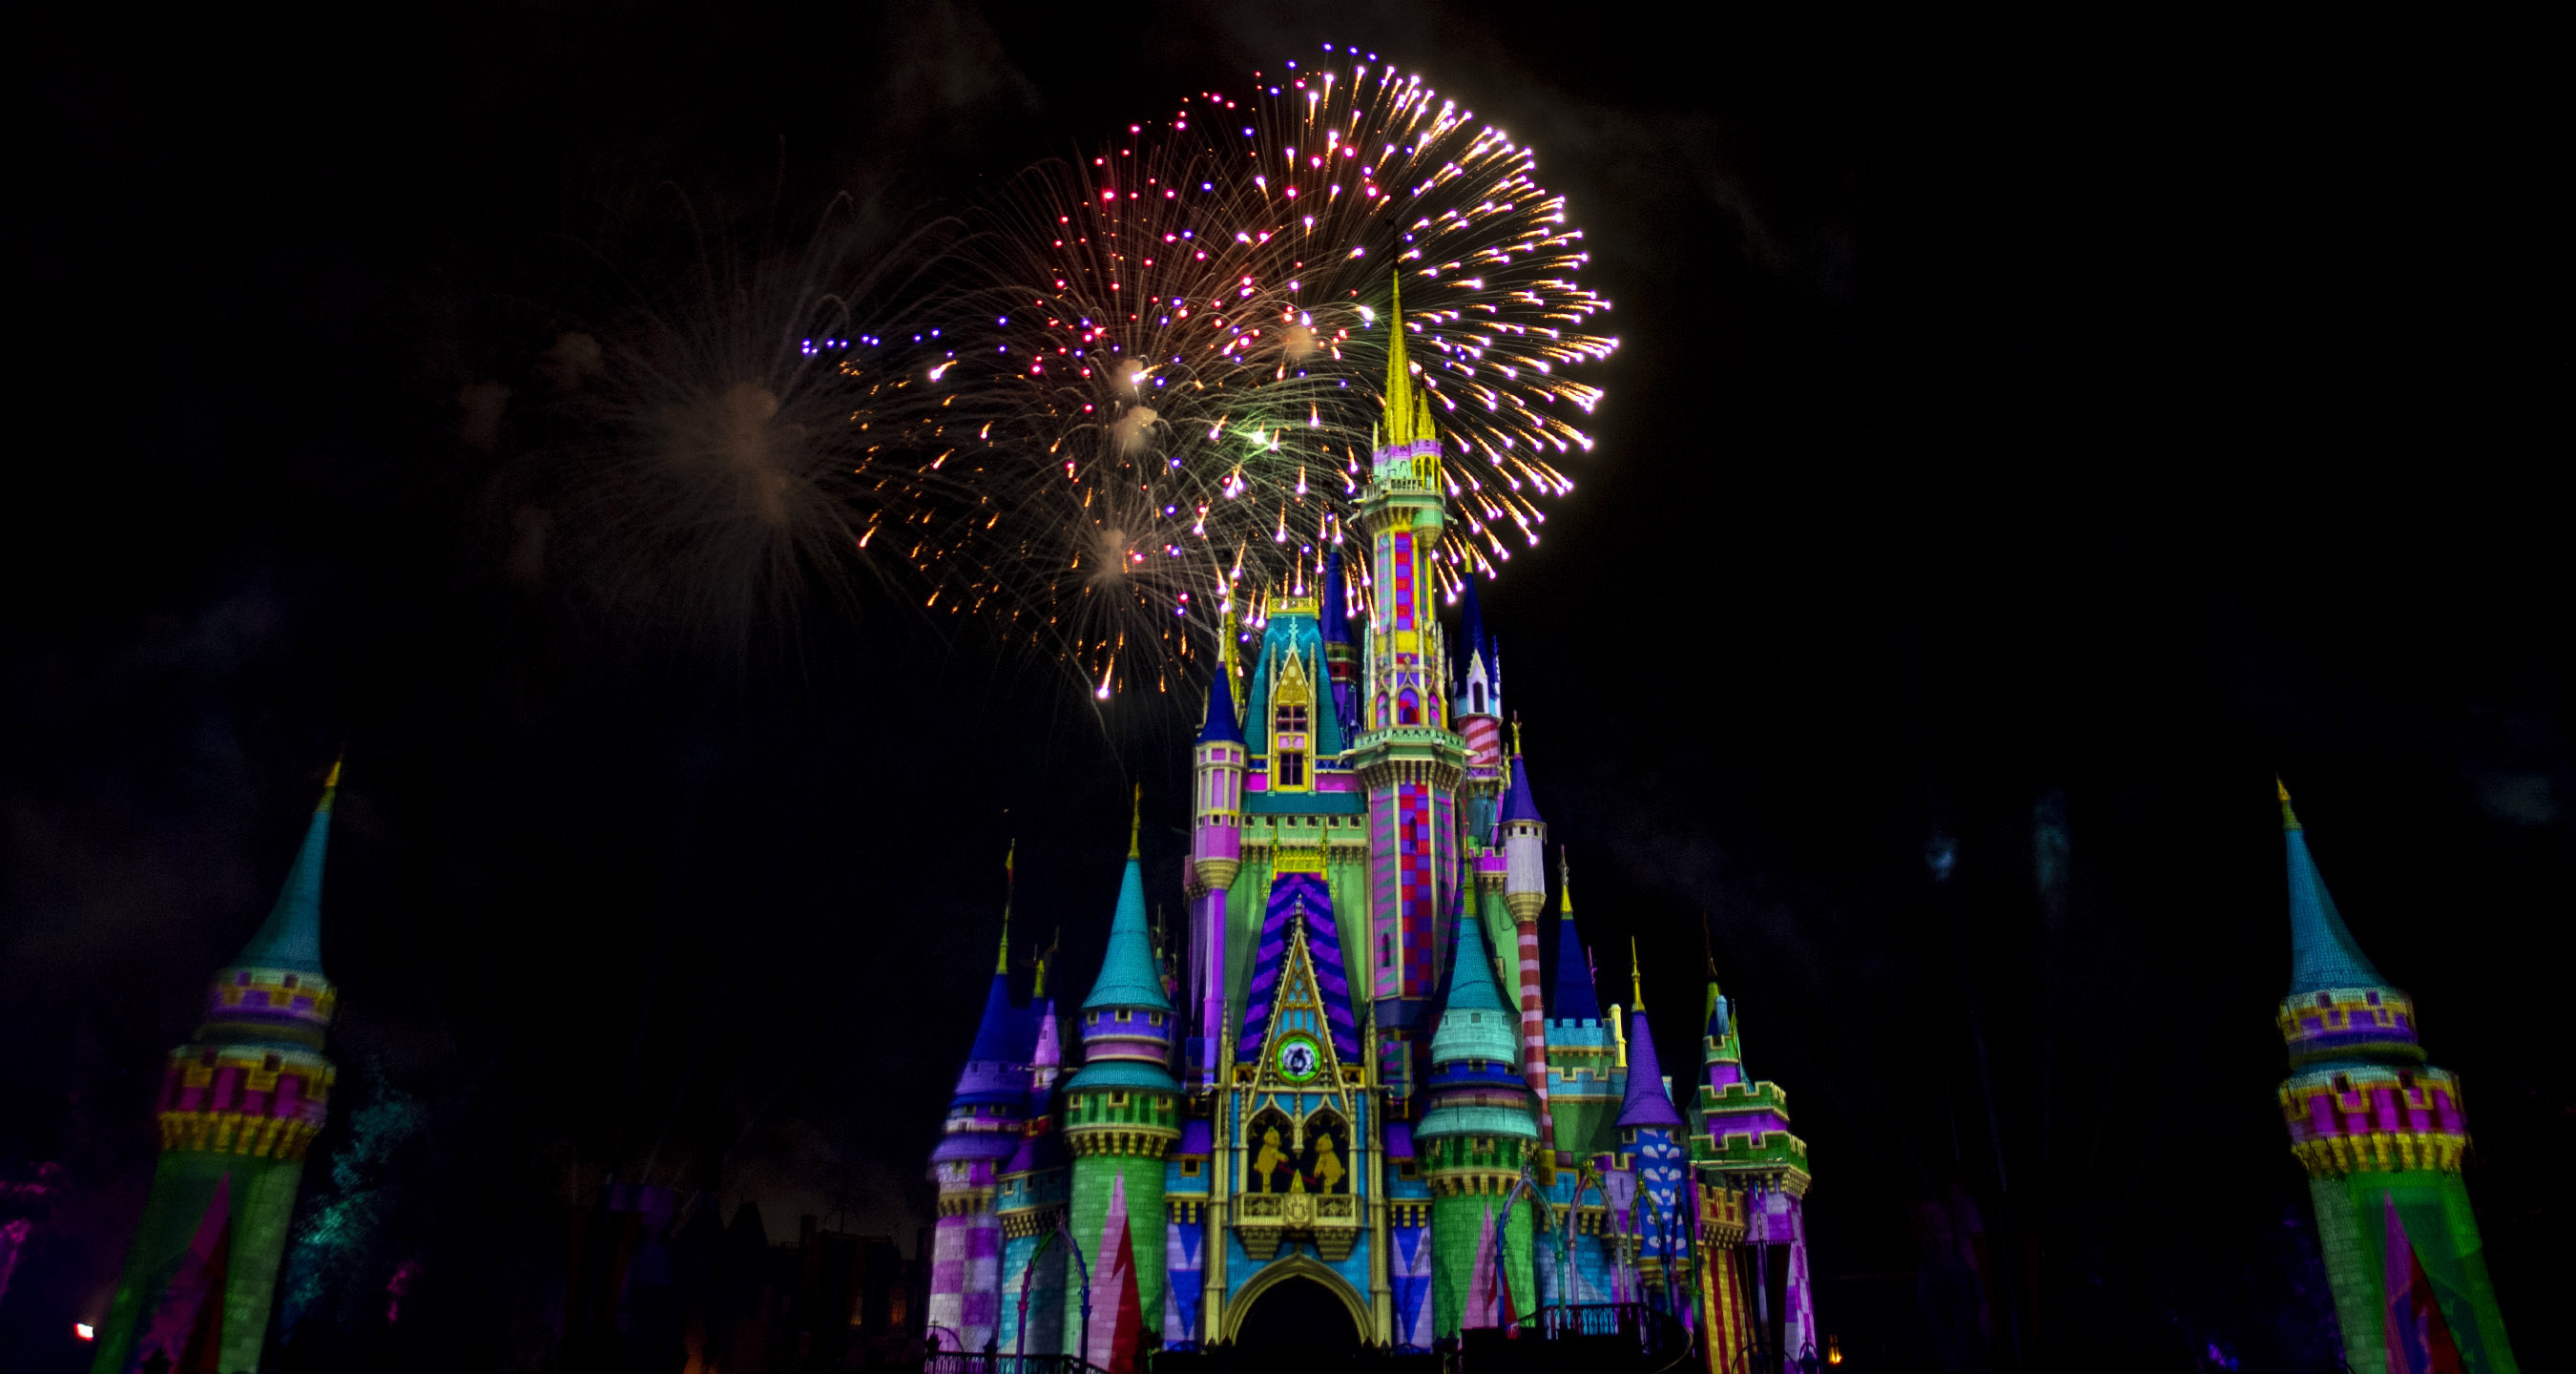 Minnie's Wonderful Christmastime Fireworks